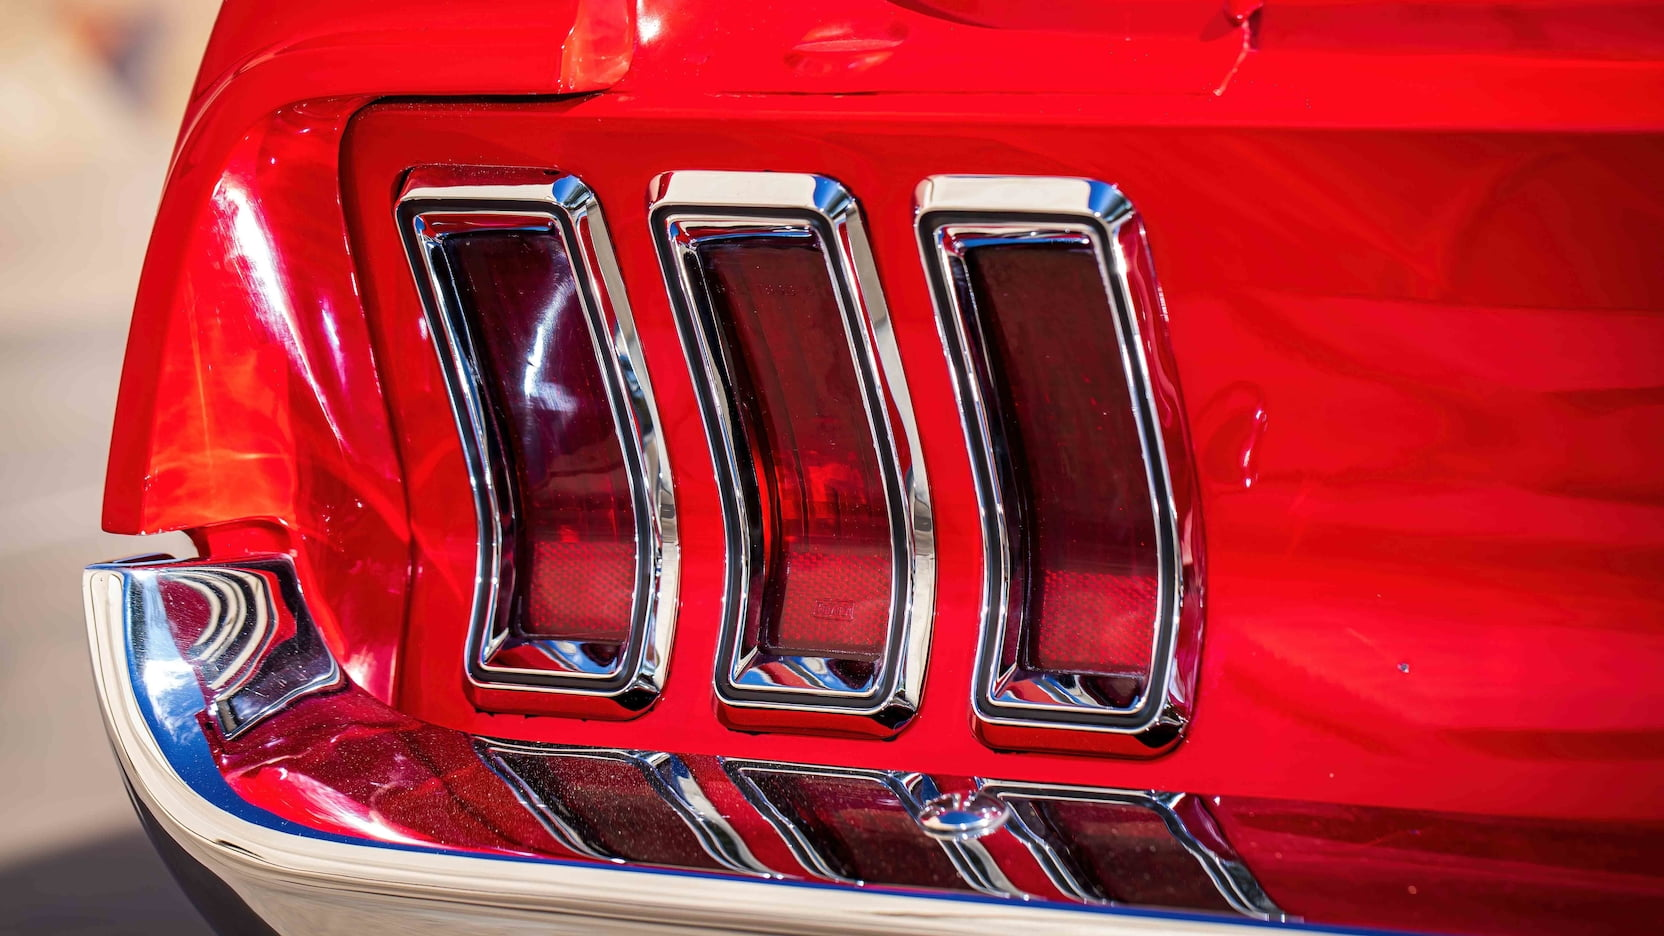 1967 Ford Mustang Holman-Moody Racer taillight detail